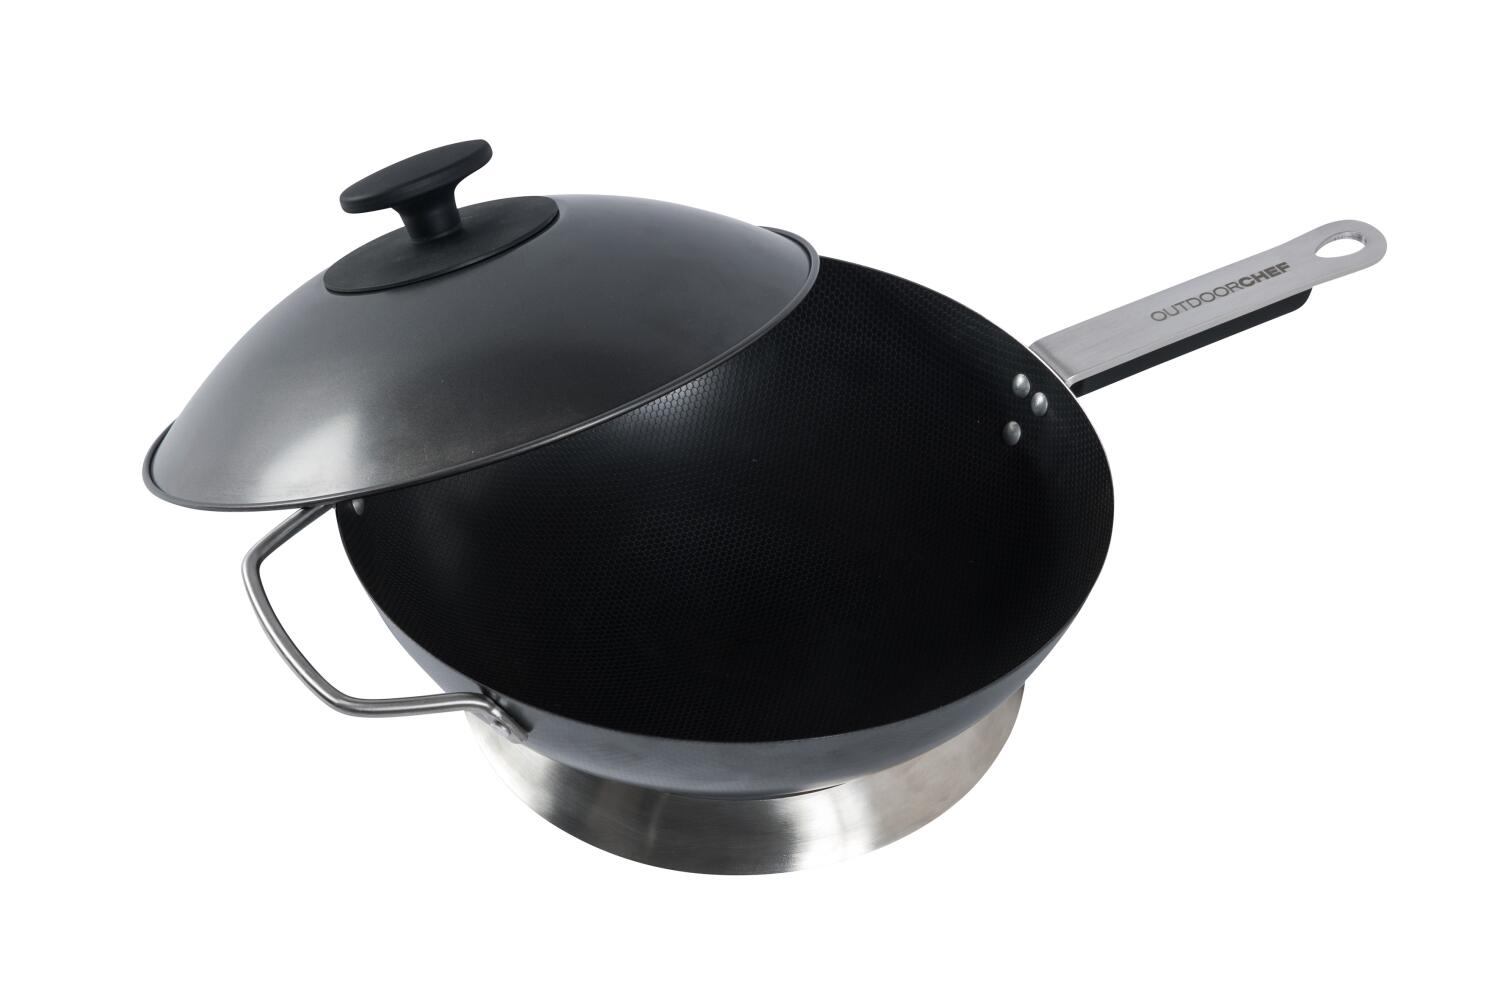 Outdoorchef Barbecue Wok